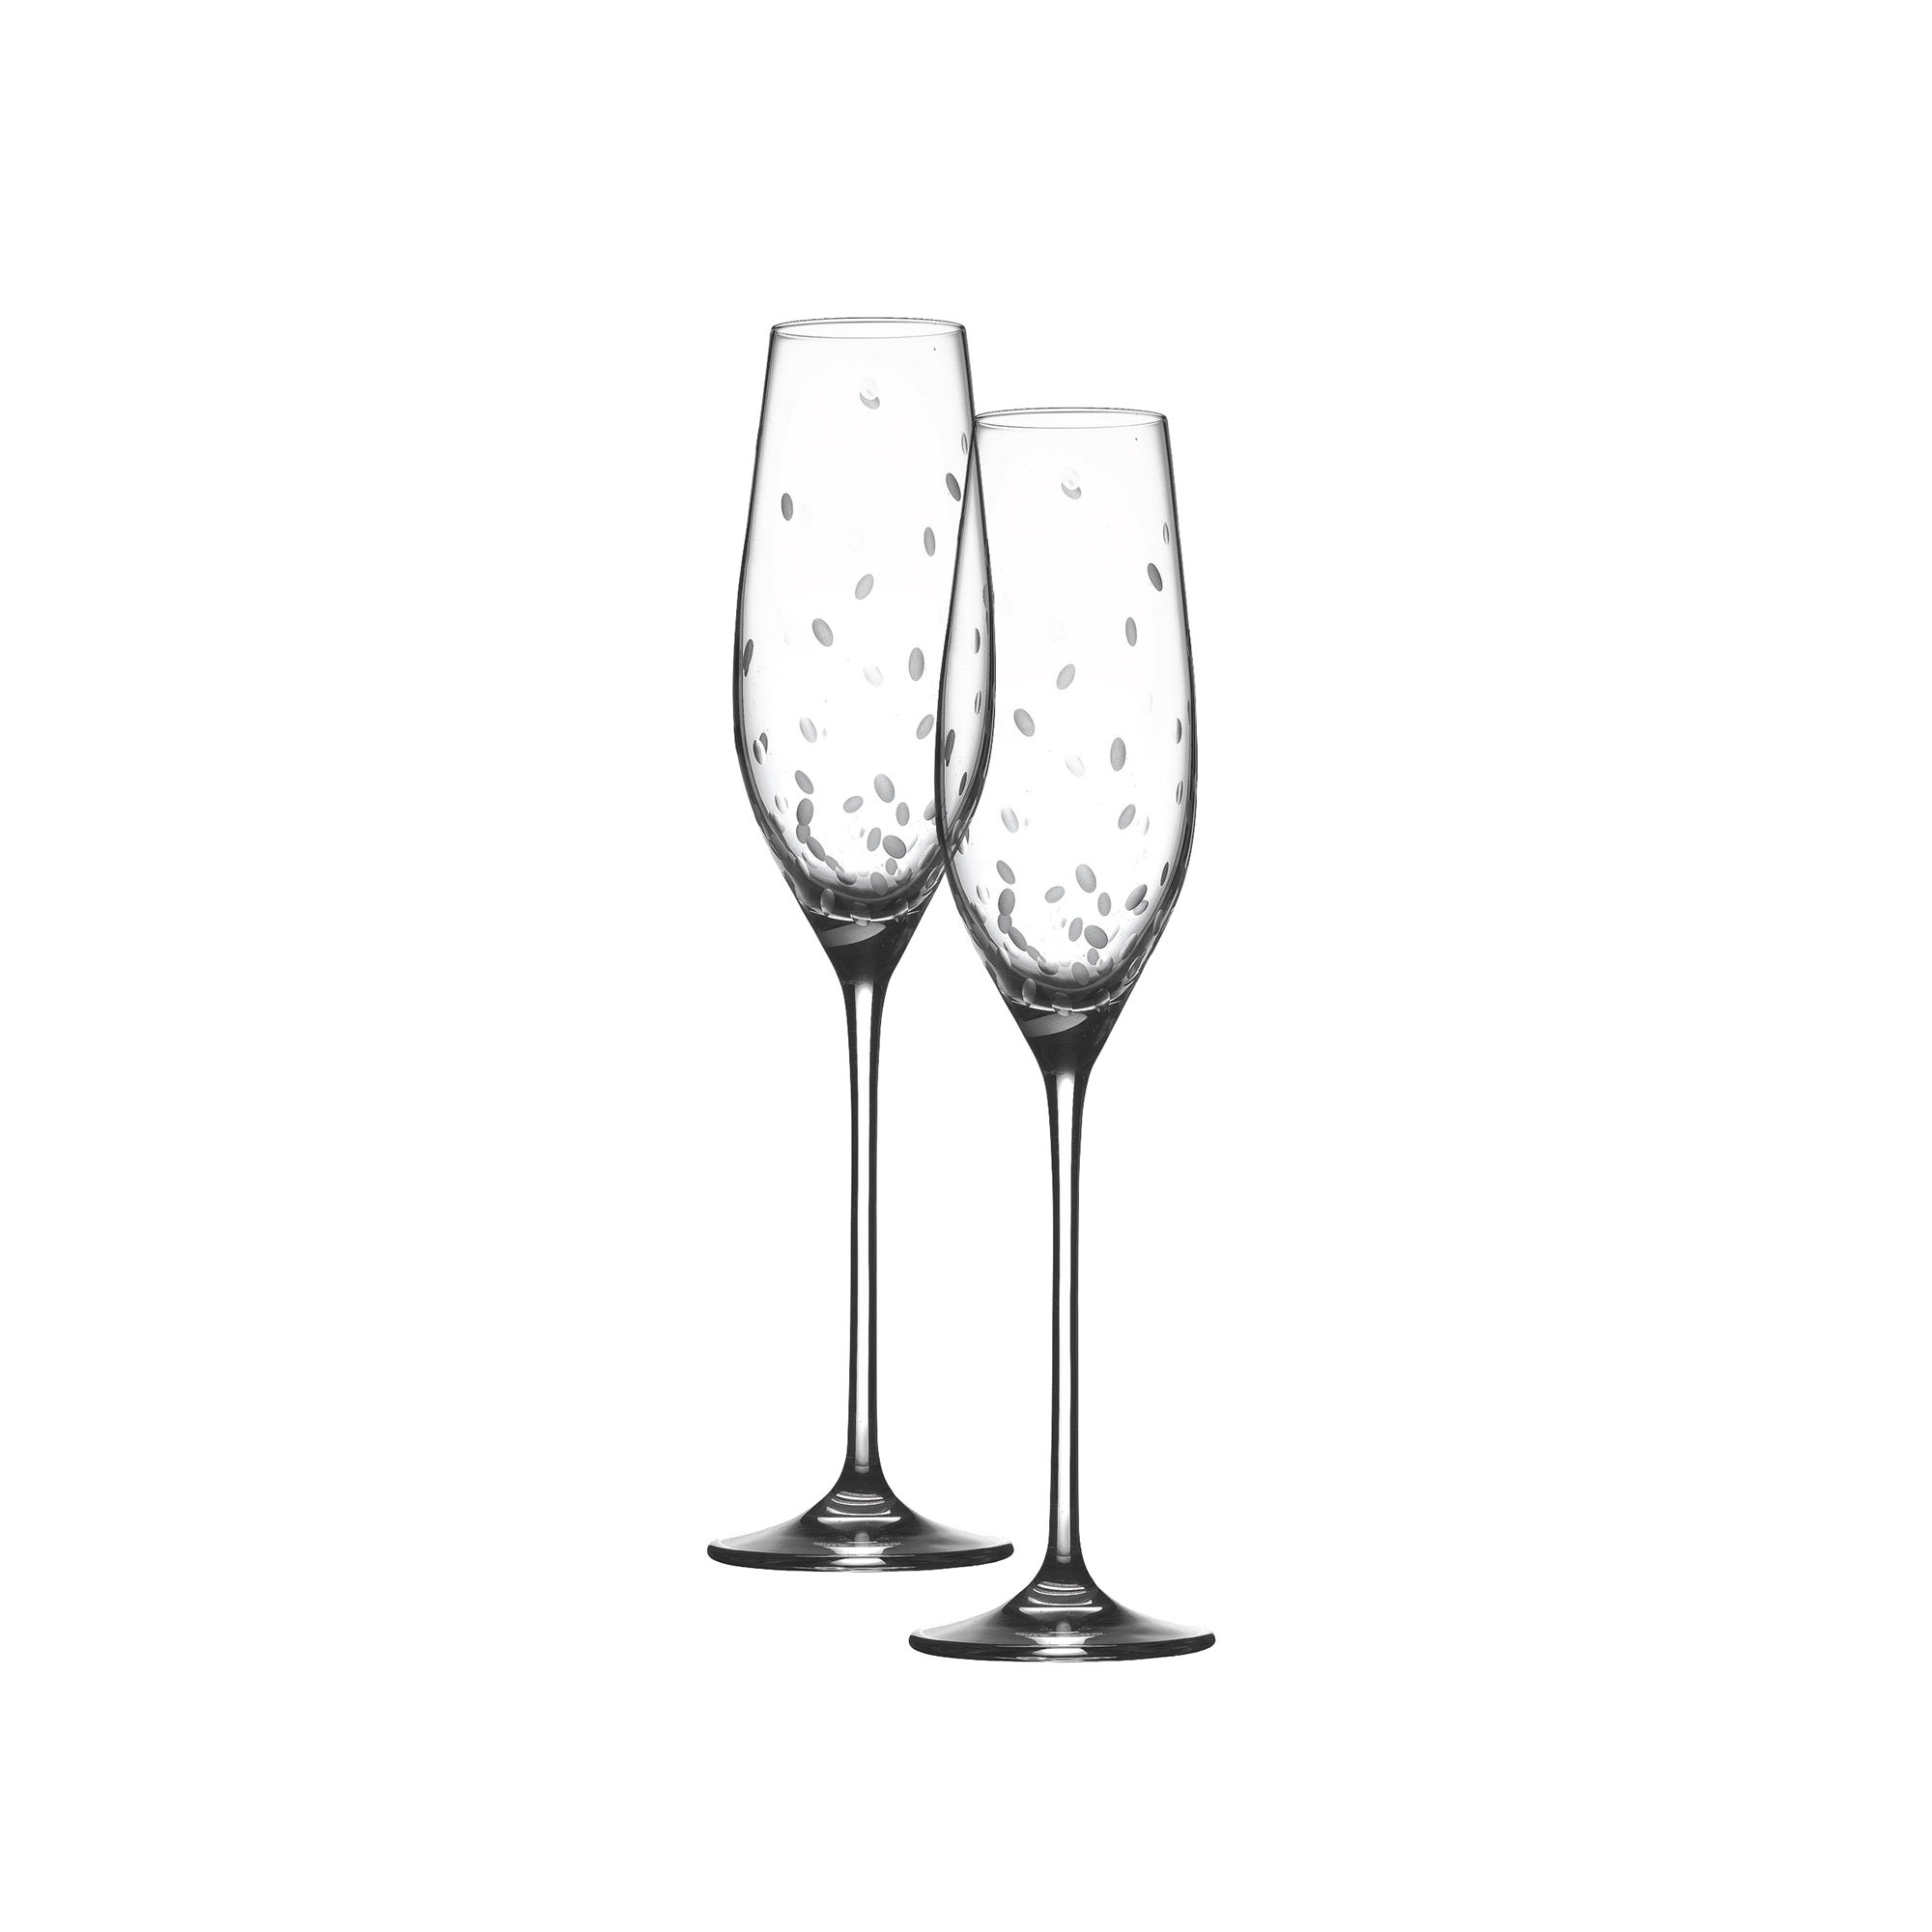 Royal Doulton Promises Celebration Pair of Toasting Flutes